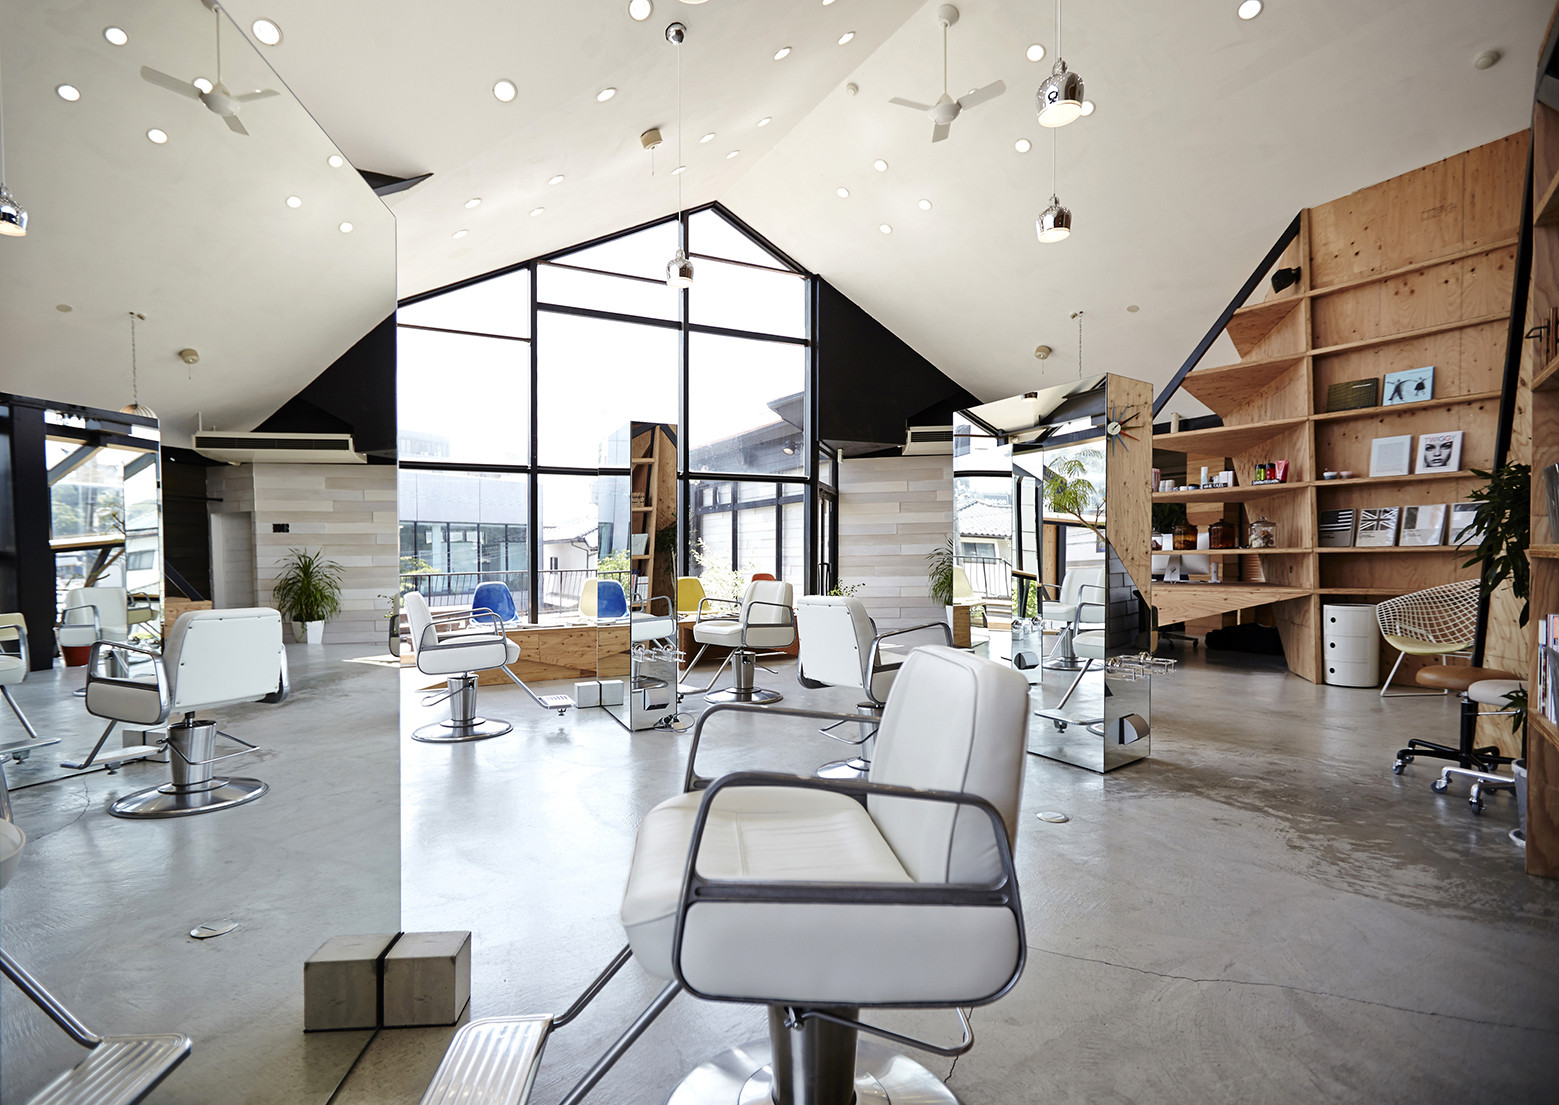 Hair salon slundre bhis archdaily for Decor interieur de salon